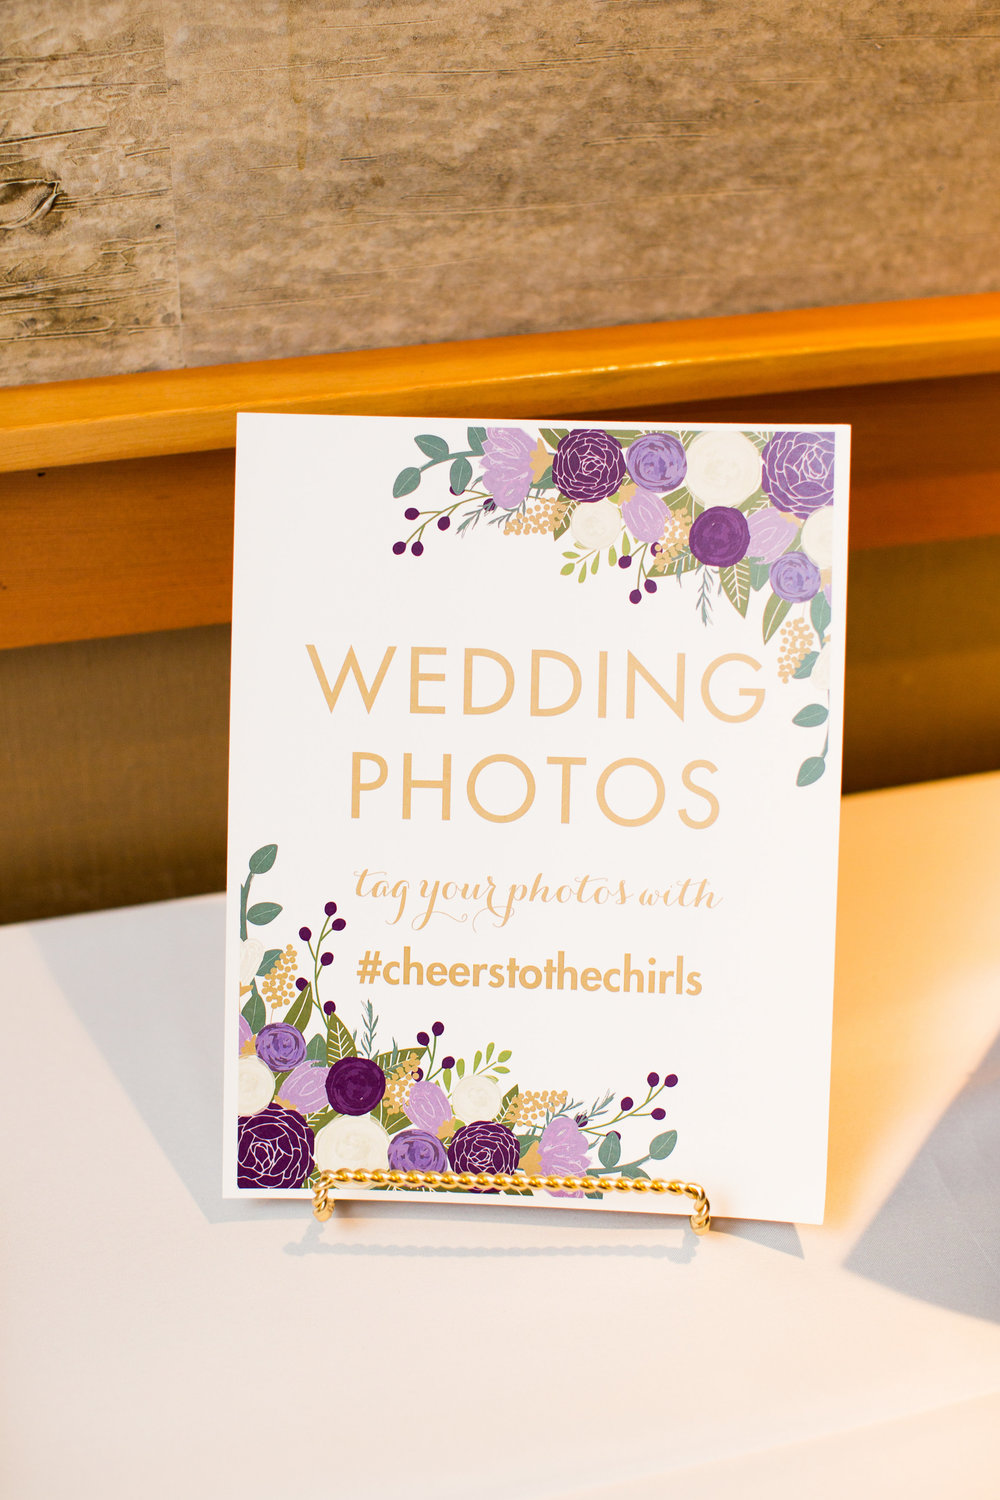 Seattle Wedding Planner, Wedding Wise | Ciccarelli Photography | Edgewater Hotel Wedding | Wedding hashtag sign